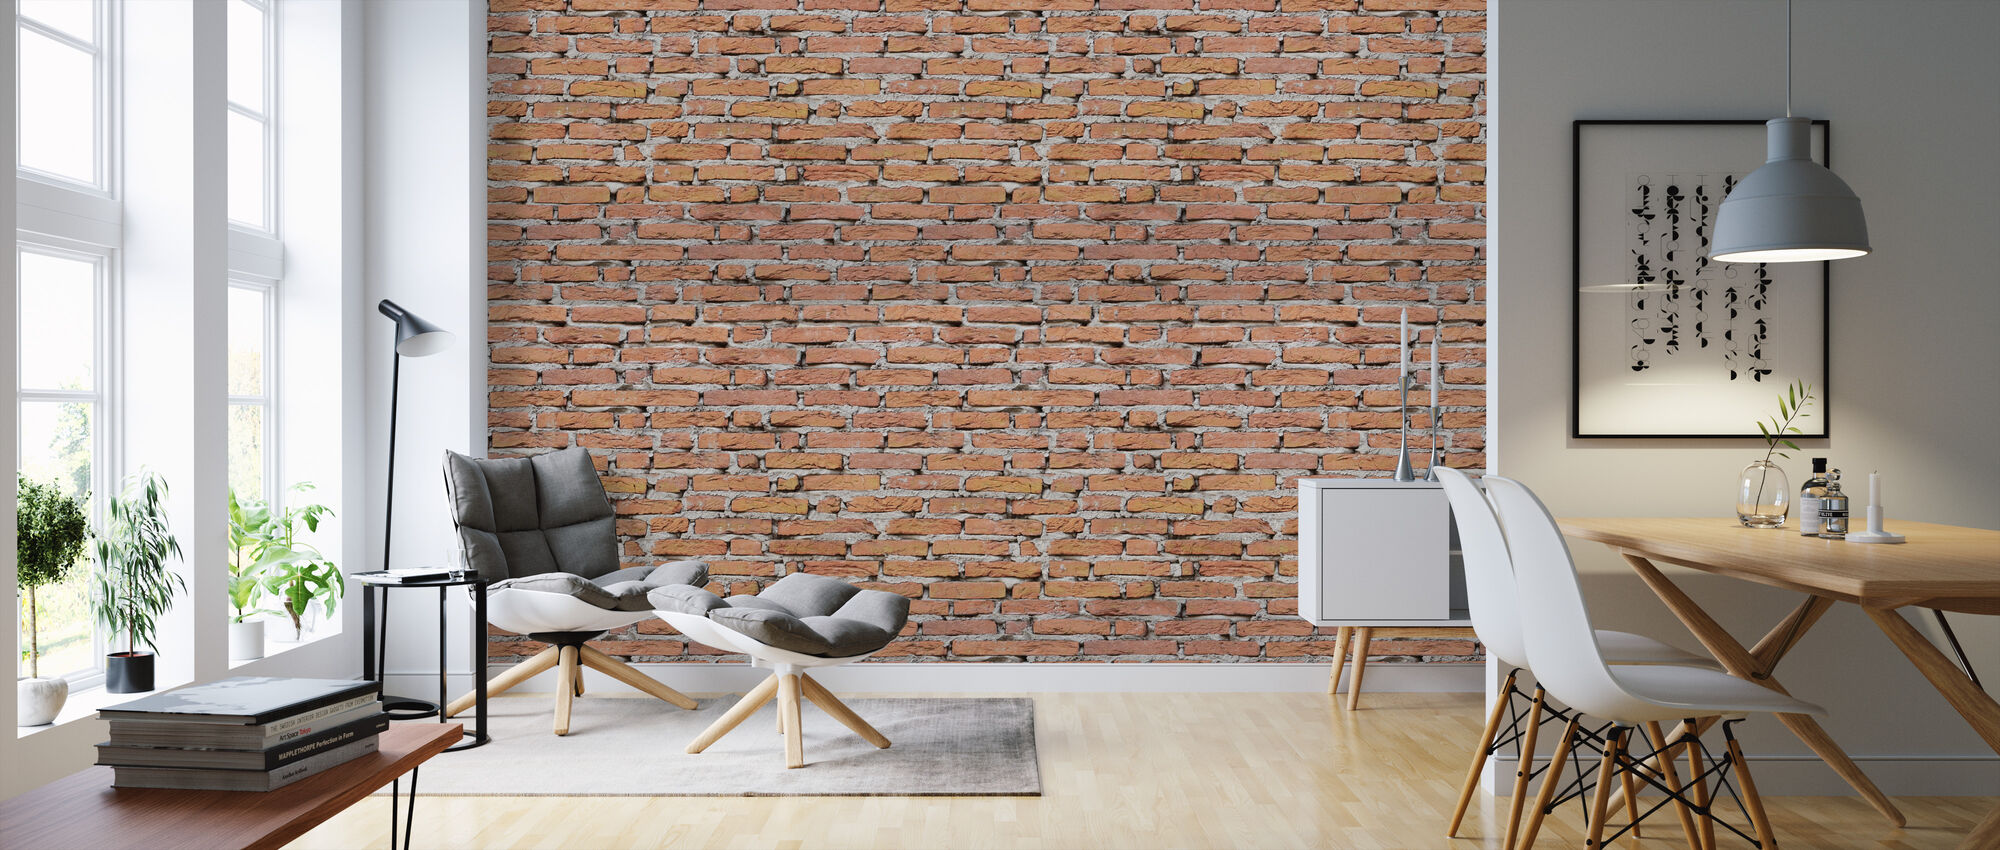 Brick Wall with Strong Joints - Wallpaper - Living Room